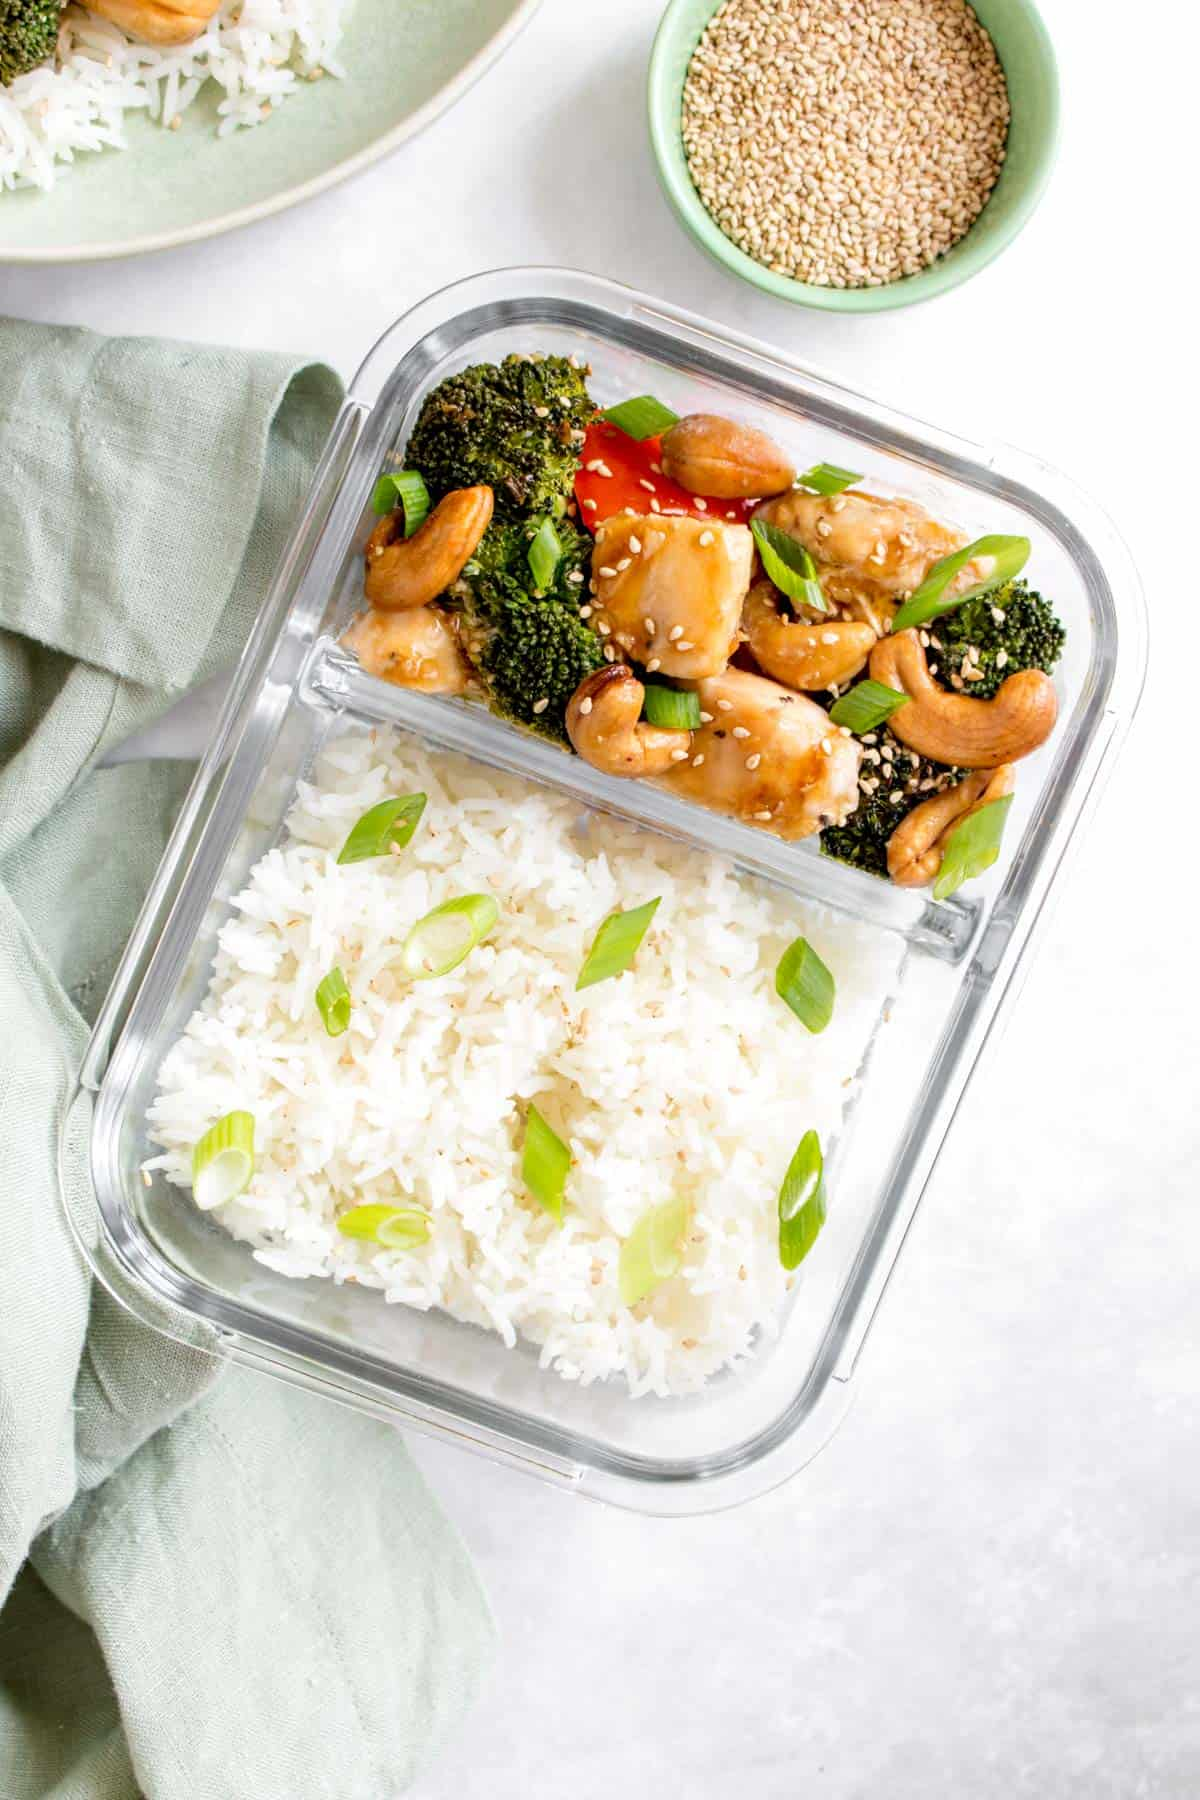 Meal prep container with rice on one side and cashew chicken on the other.